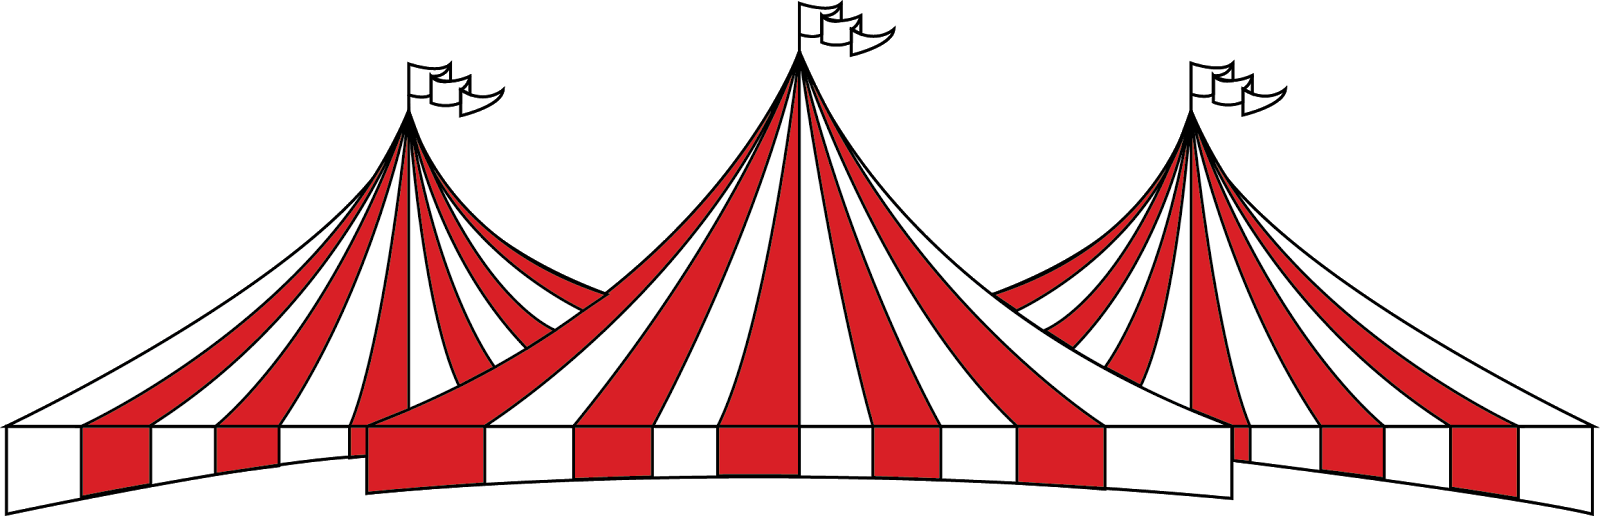 Carnival clipart elementary school For About Lake Annual This